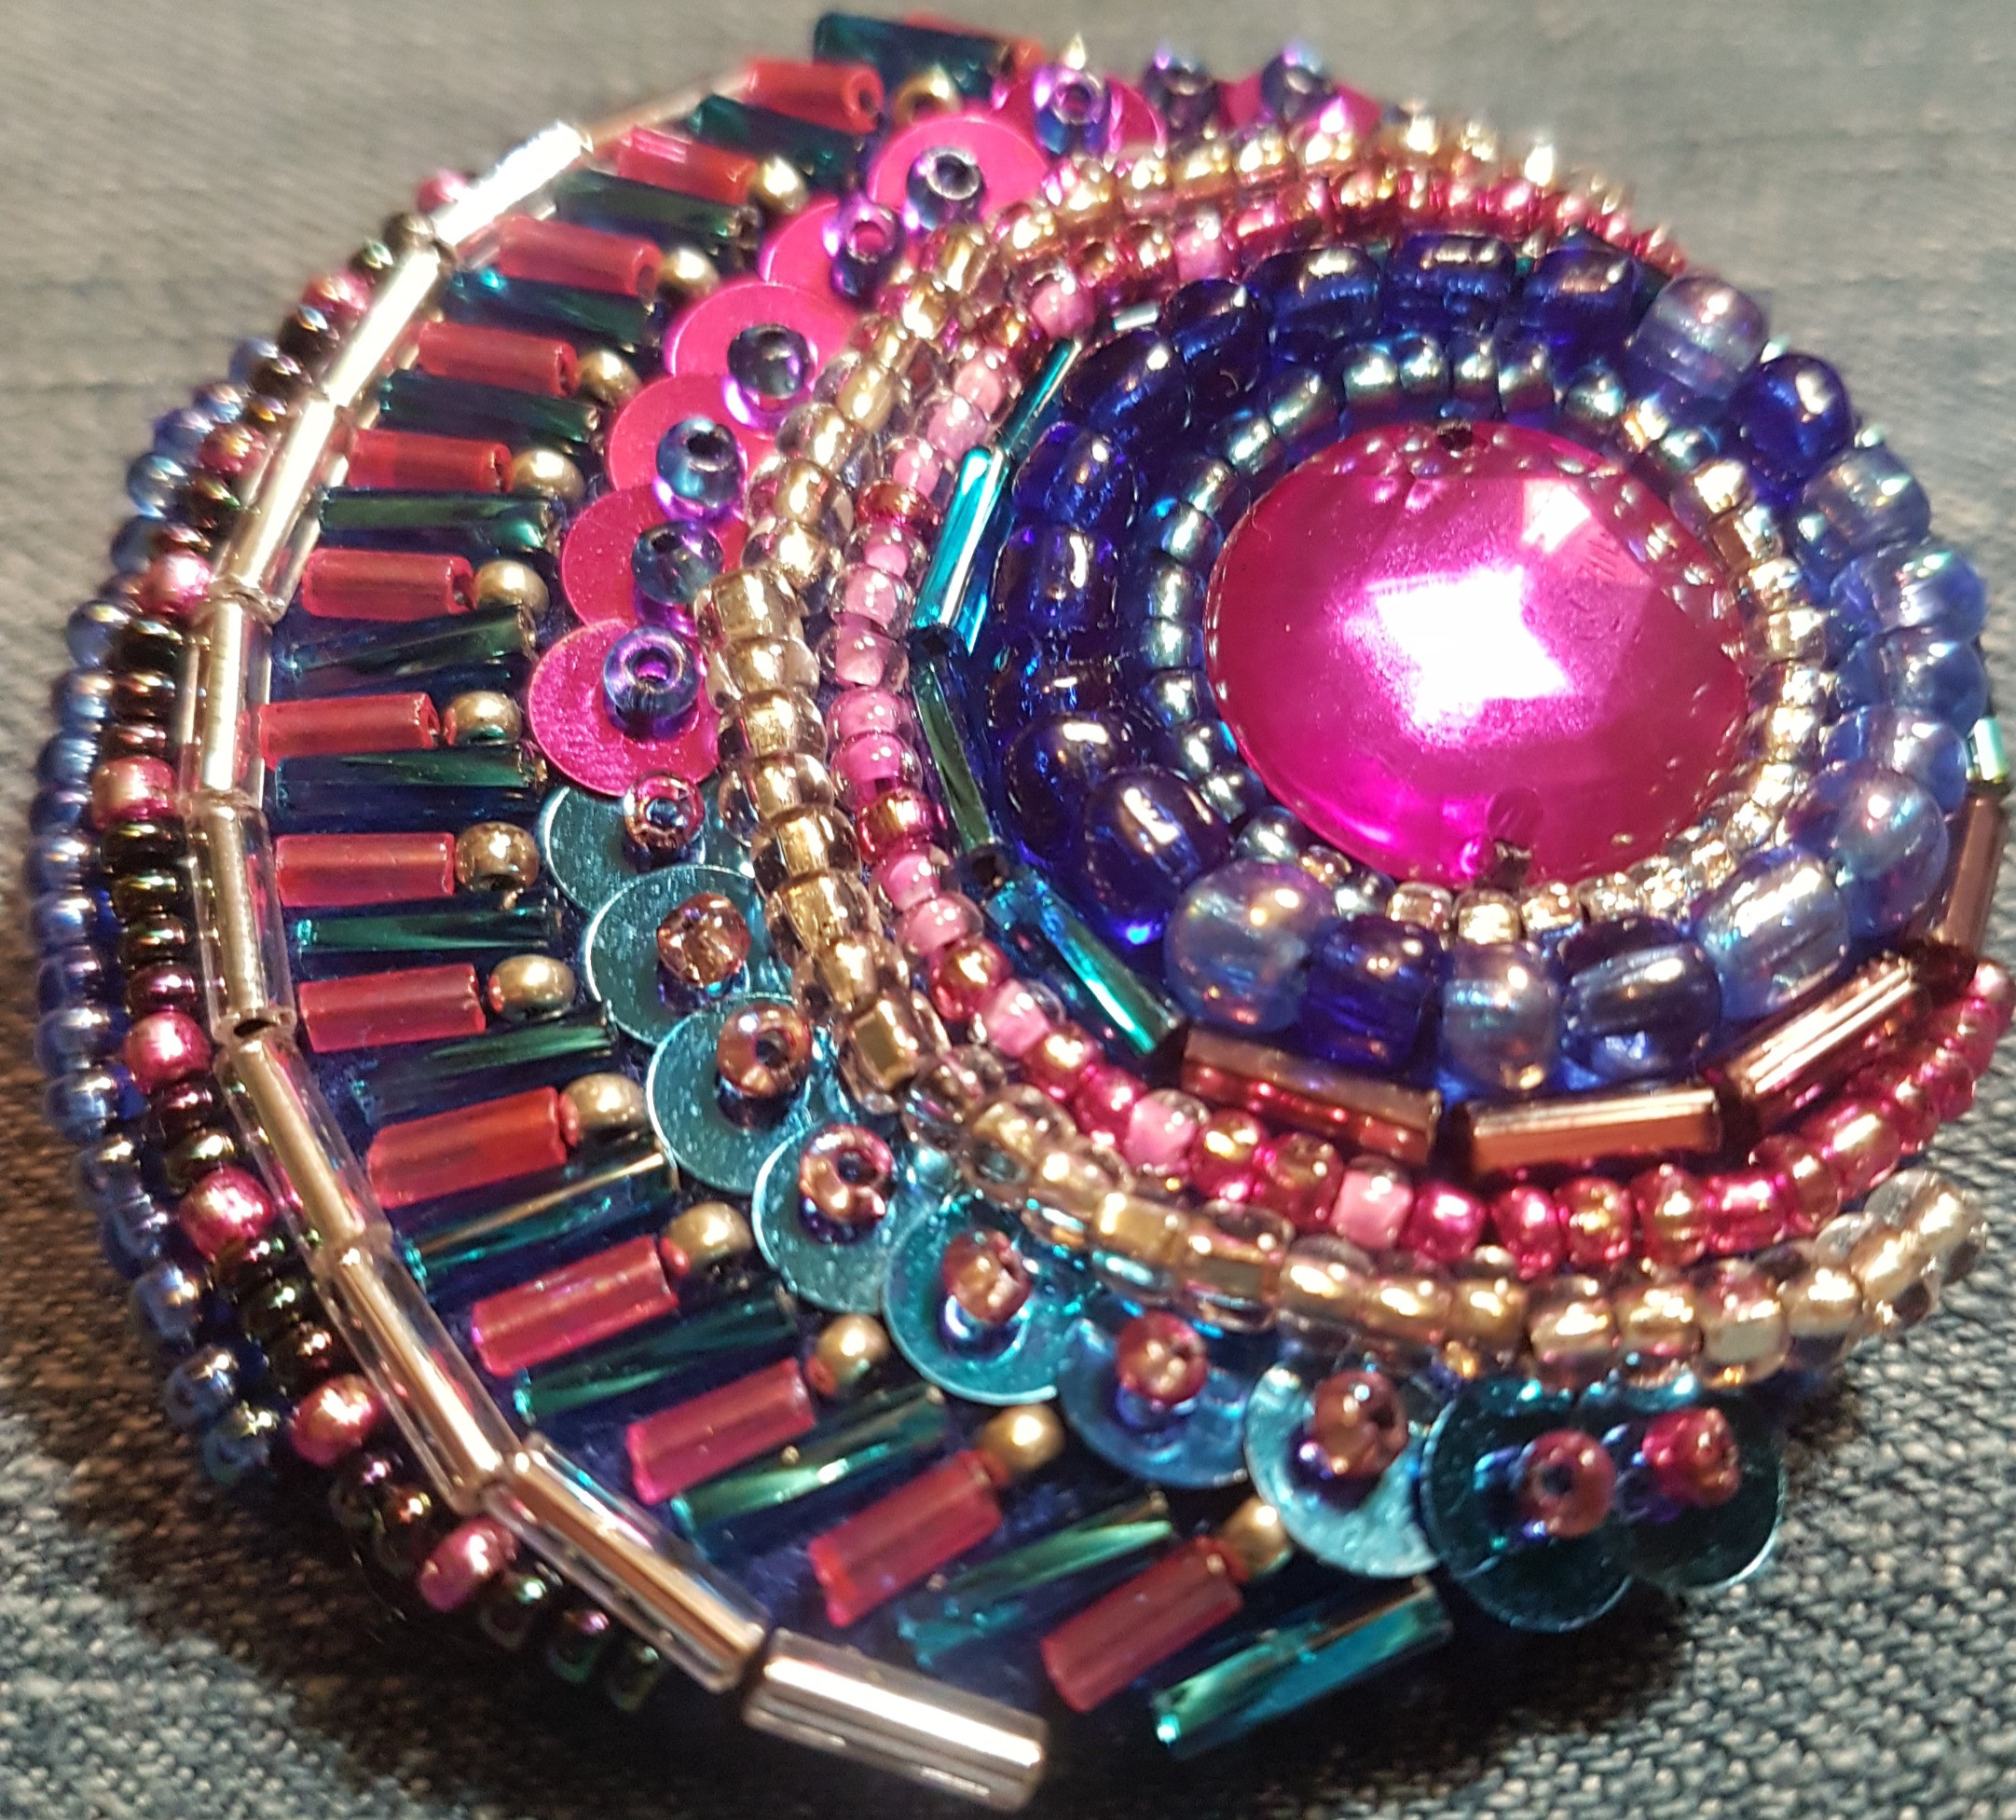 Beads & Sequins in Embroidery